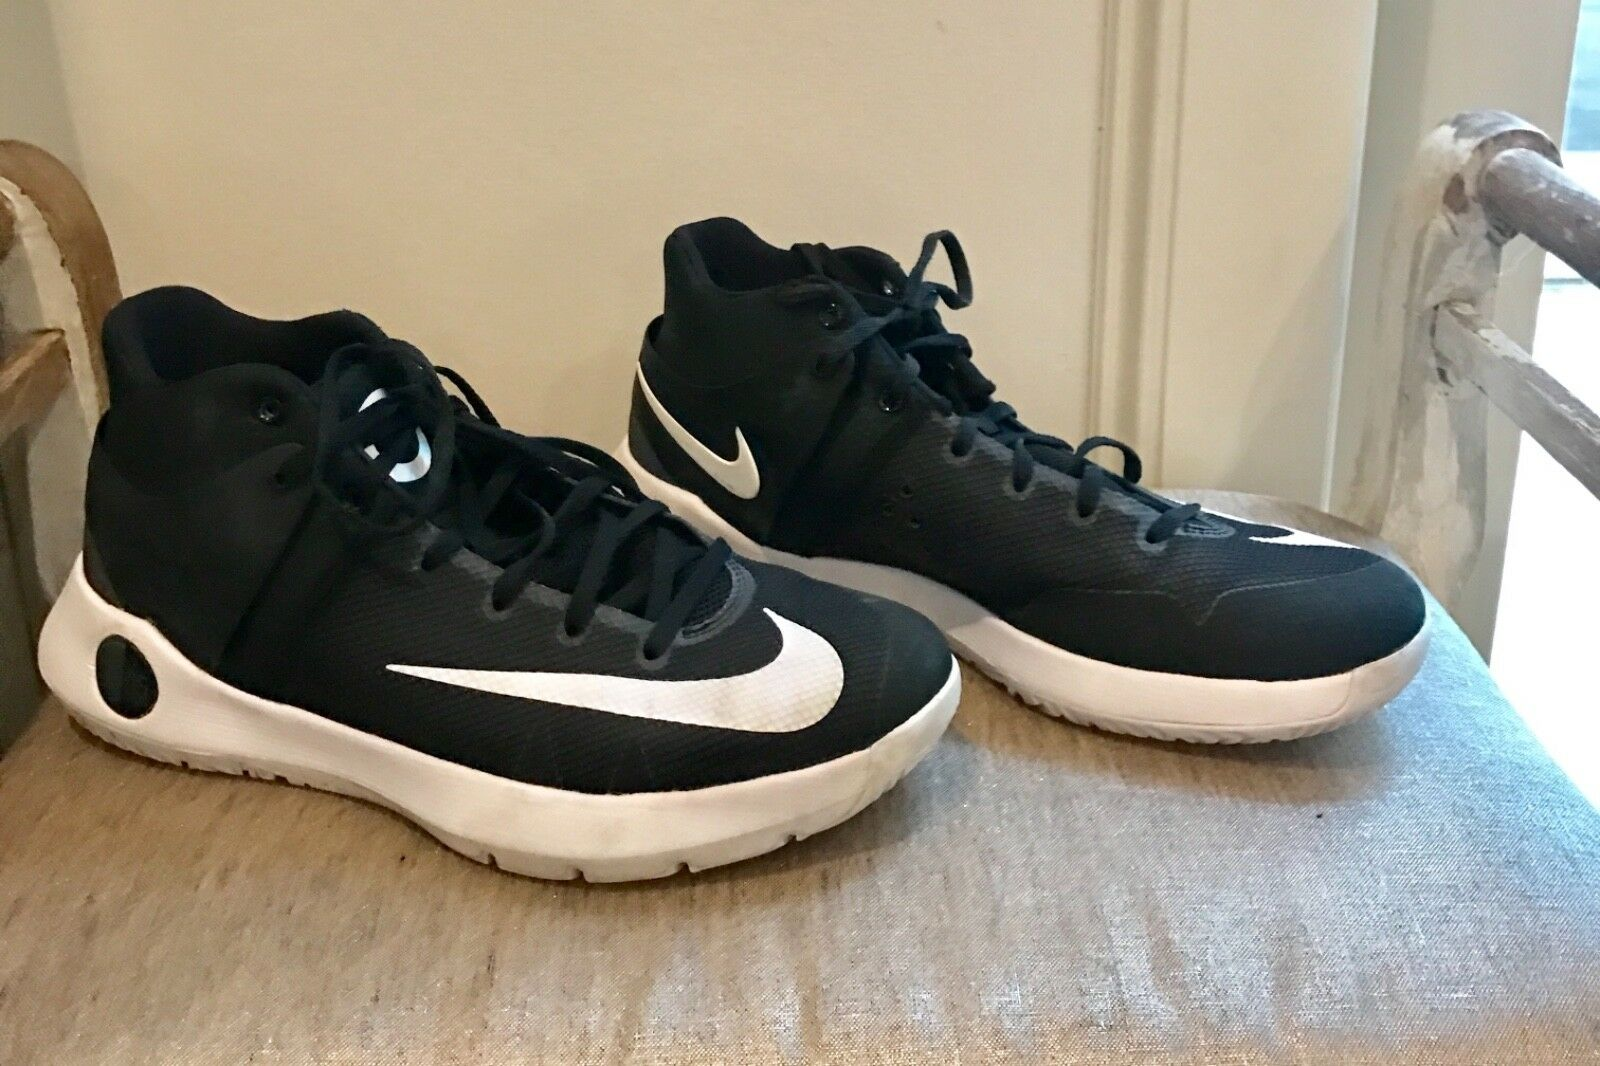 Brand discount Men's KD Nike black and white basketball shoes size 10